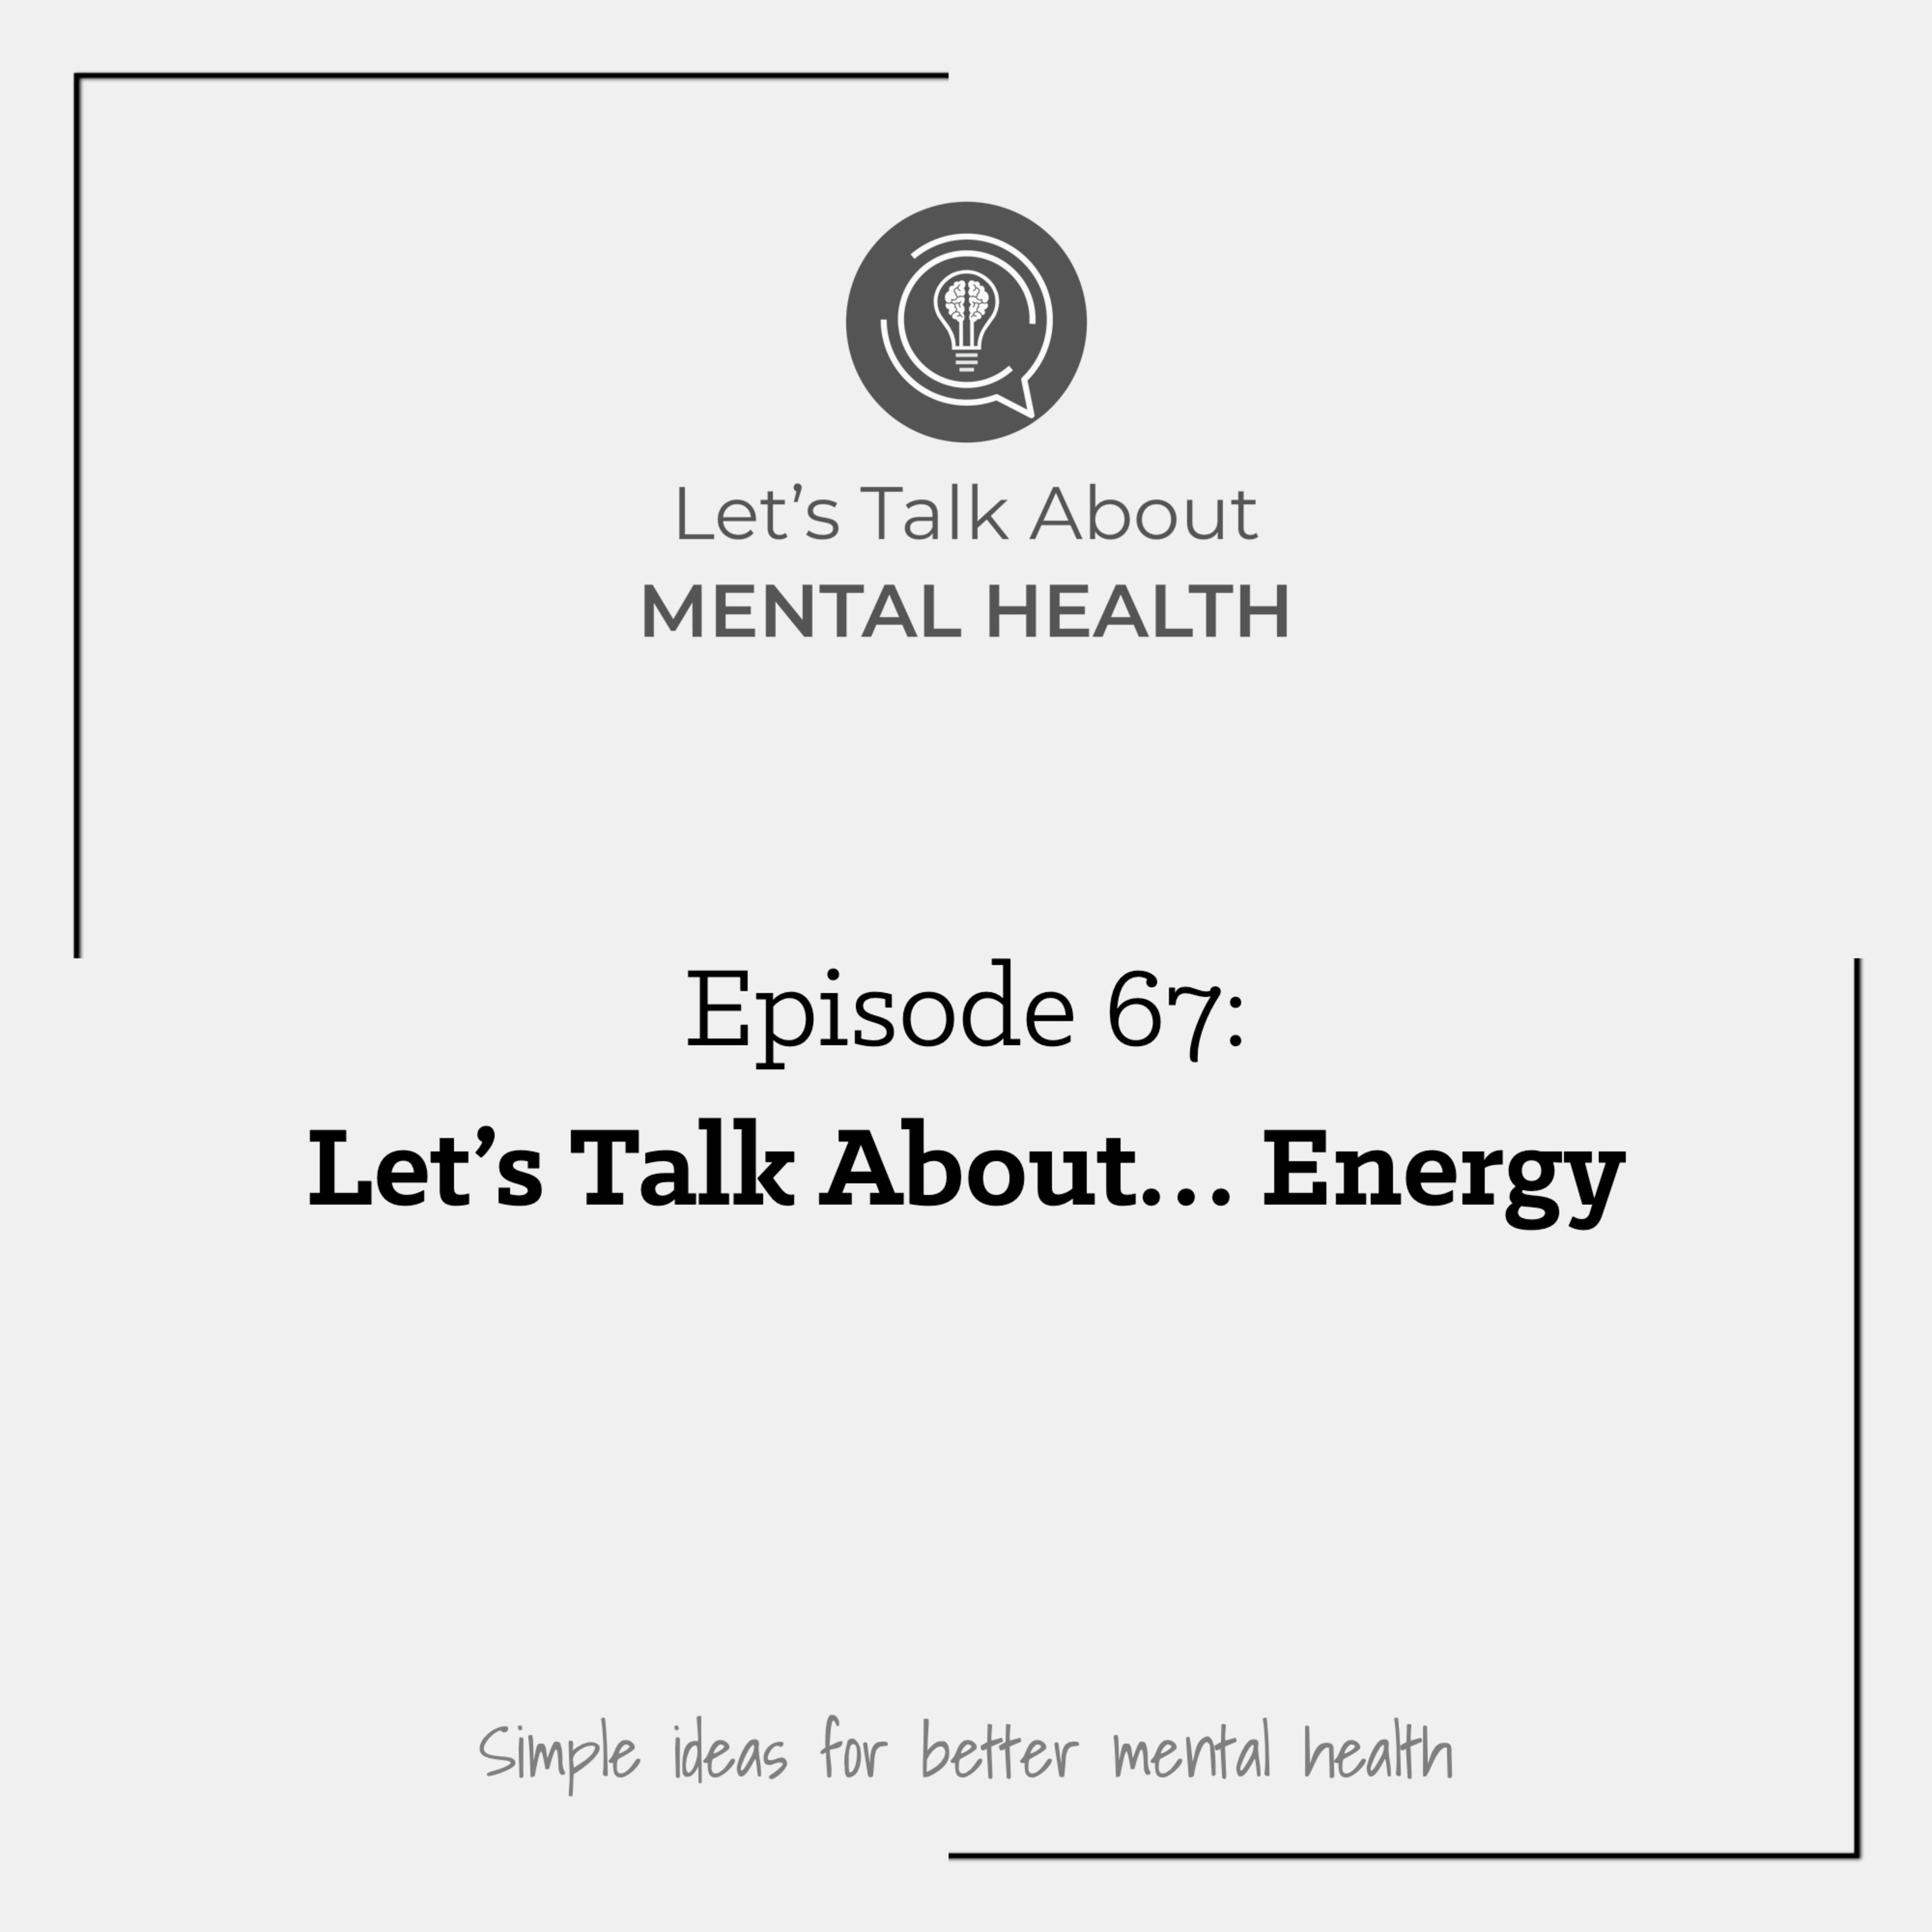 Let's Talk About Mental Health - Let's Talk About... Energy